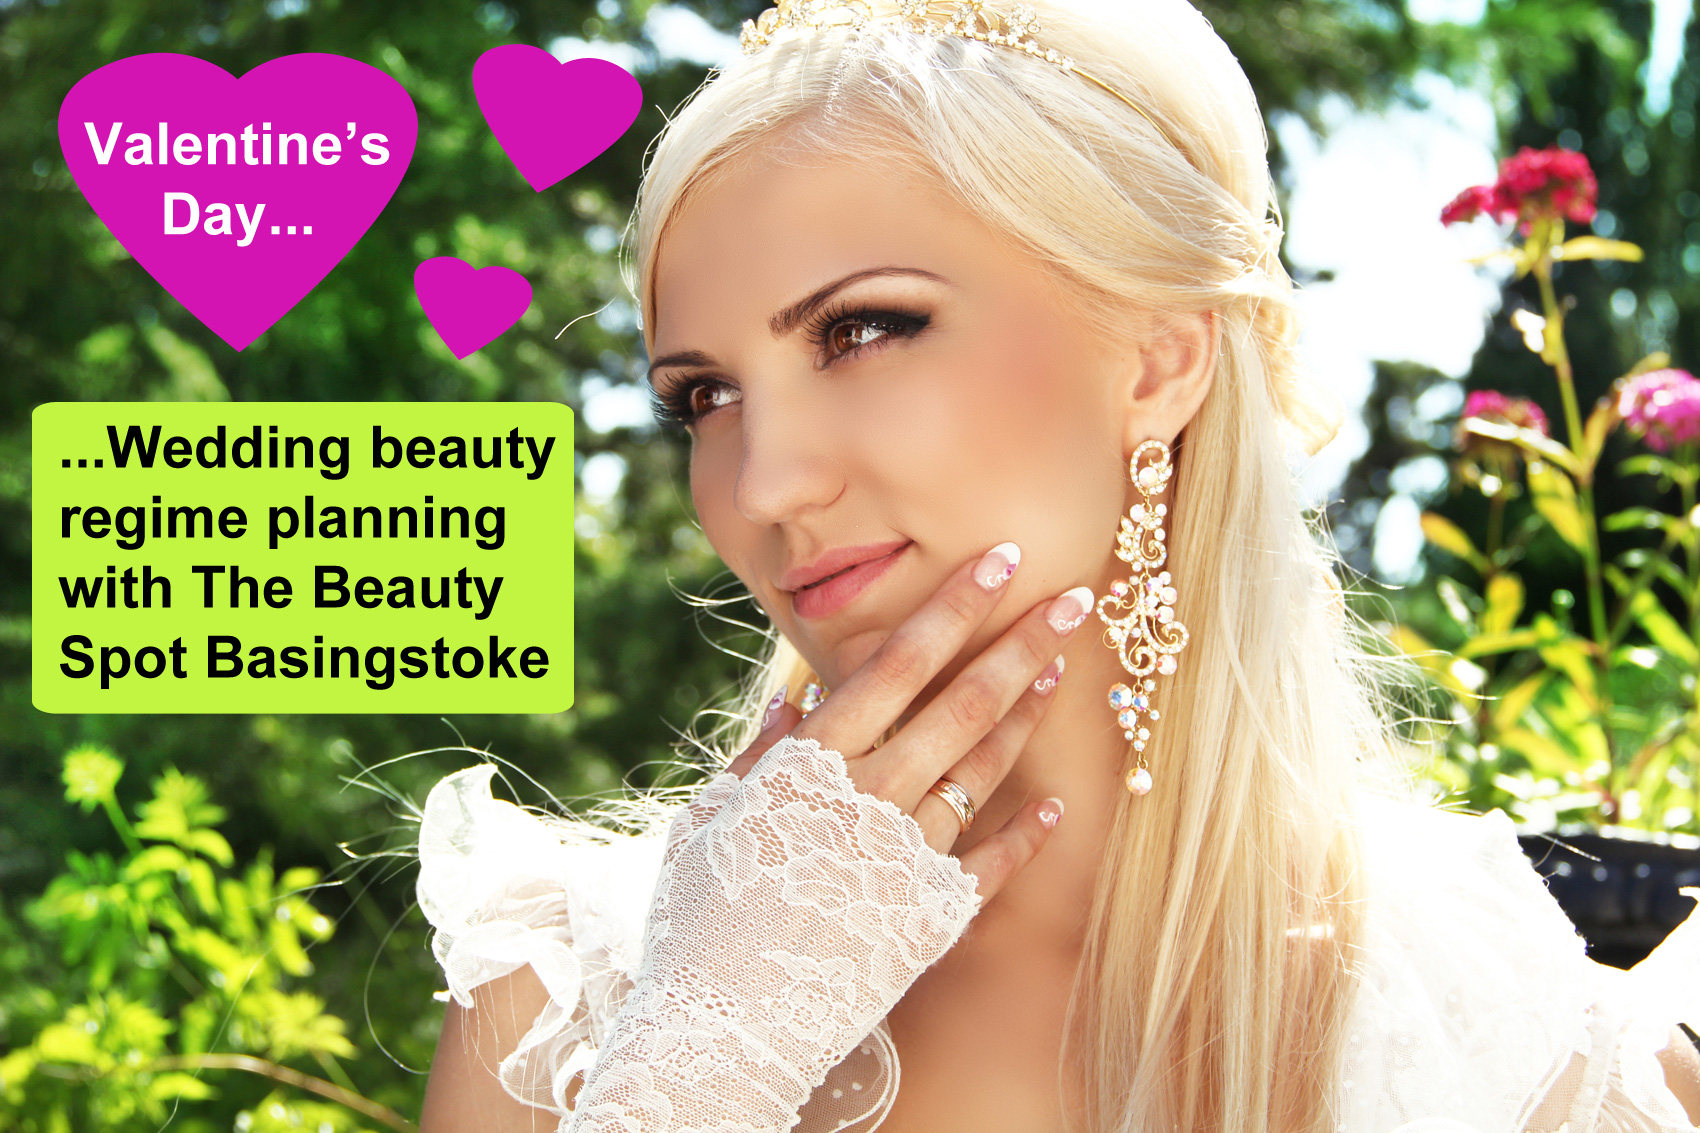 Plan Your Wedding Beauty Regime with The Beauty Spot at Basingstoke